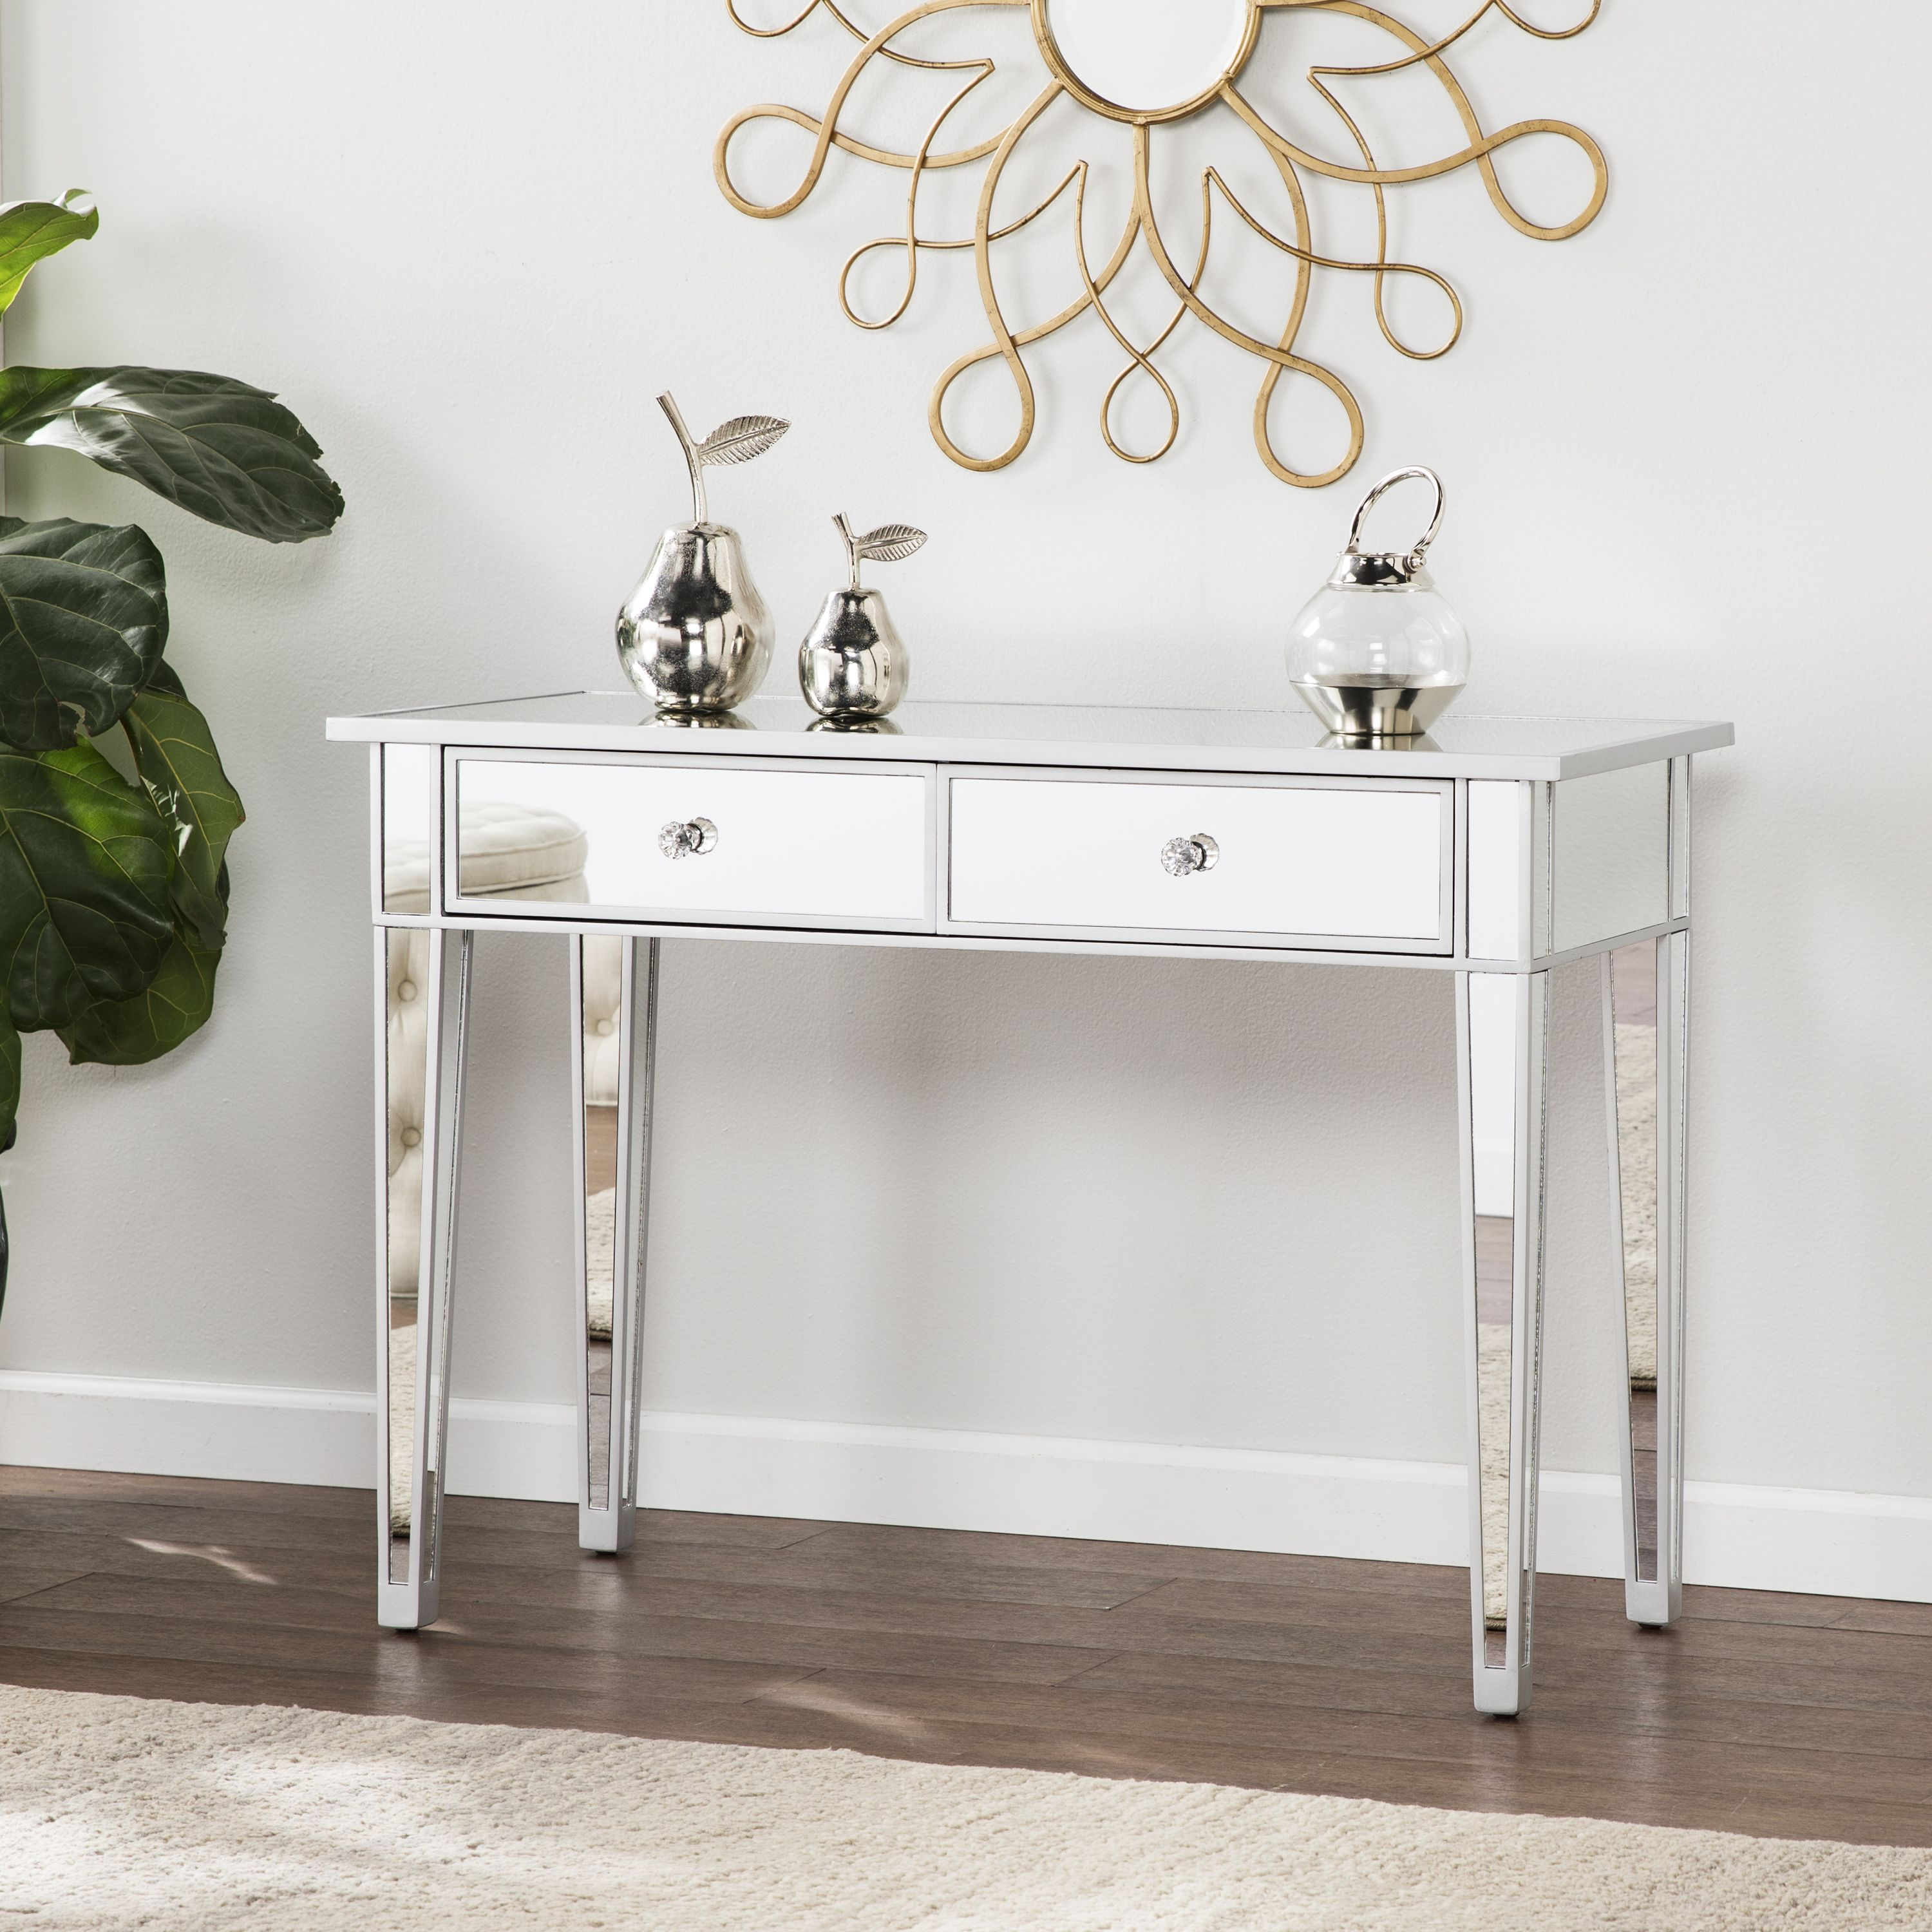 Southern Enterprises Illusions Collection Mirrored Console Table Desk Walmart Com In 2020 Mirrored Console Table Hall Console Table Mirrored Sofa Table